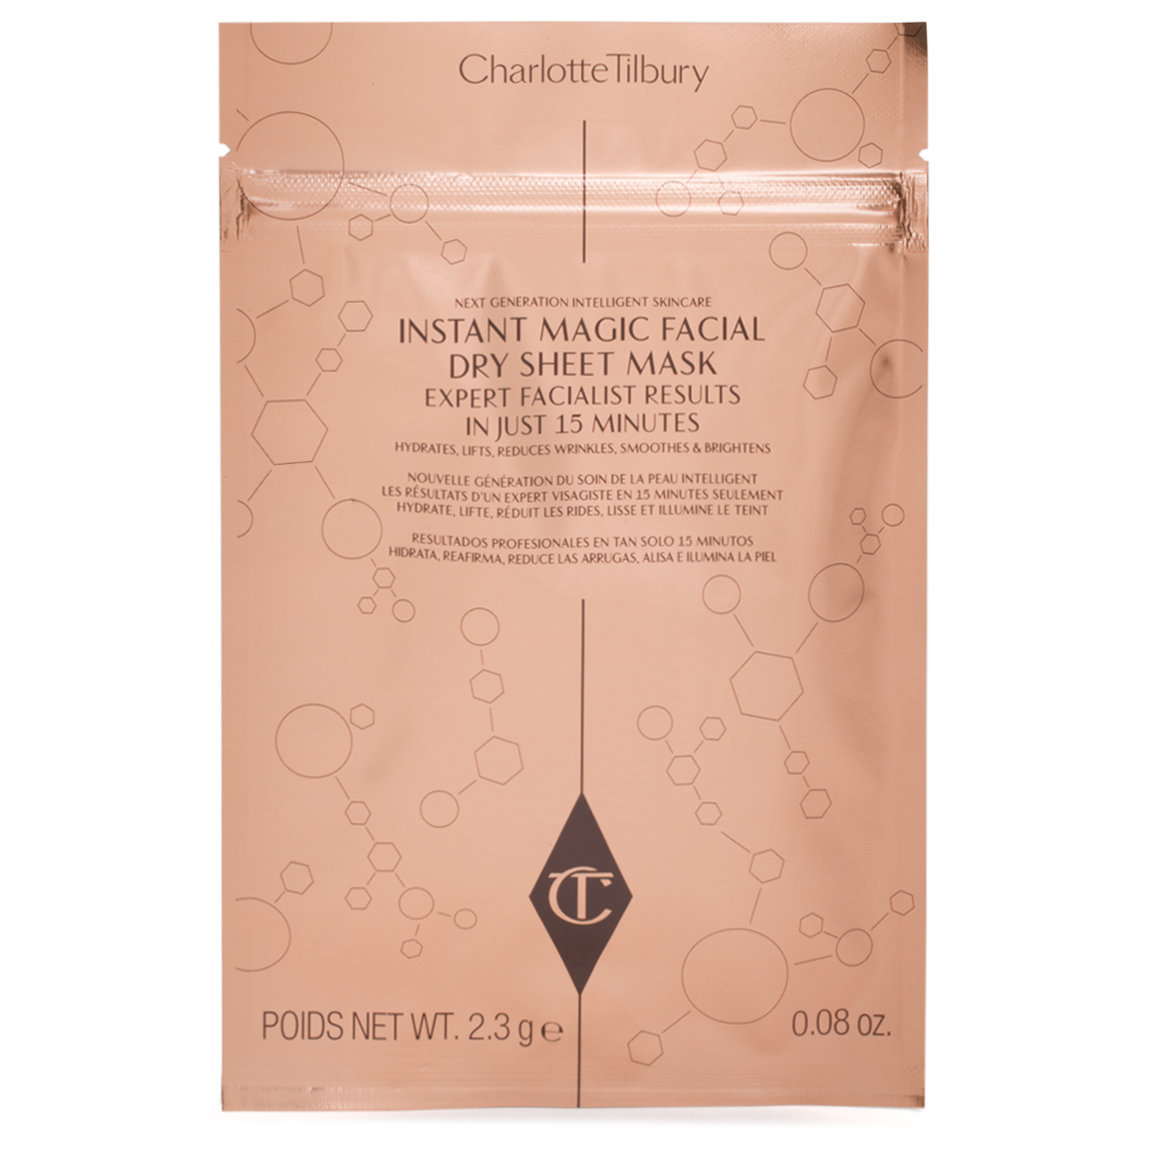 Charlotte Tilbury Instant Magic Facial Dry Sheet Mask alternative view 1 - product swatch.